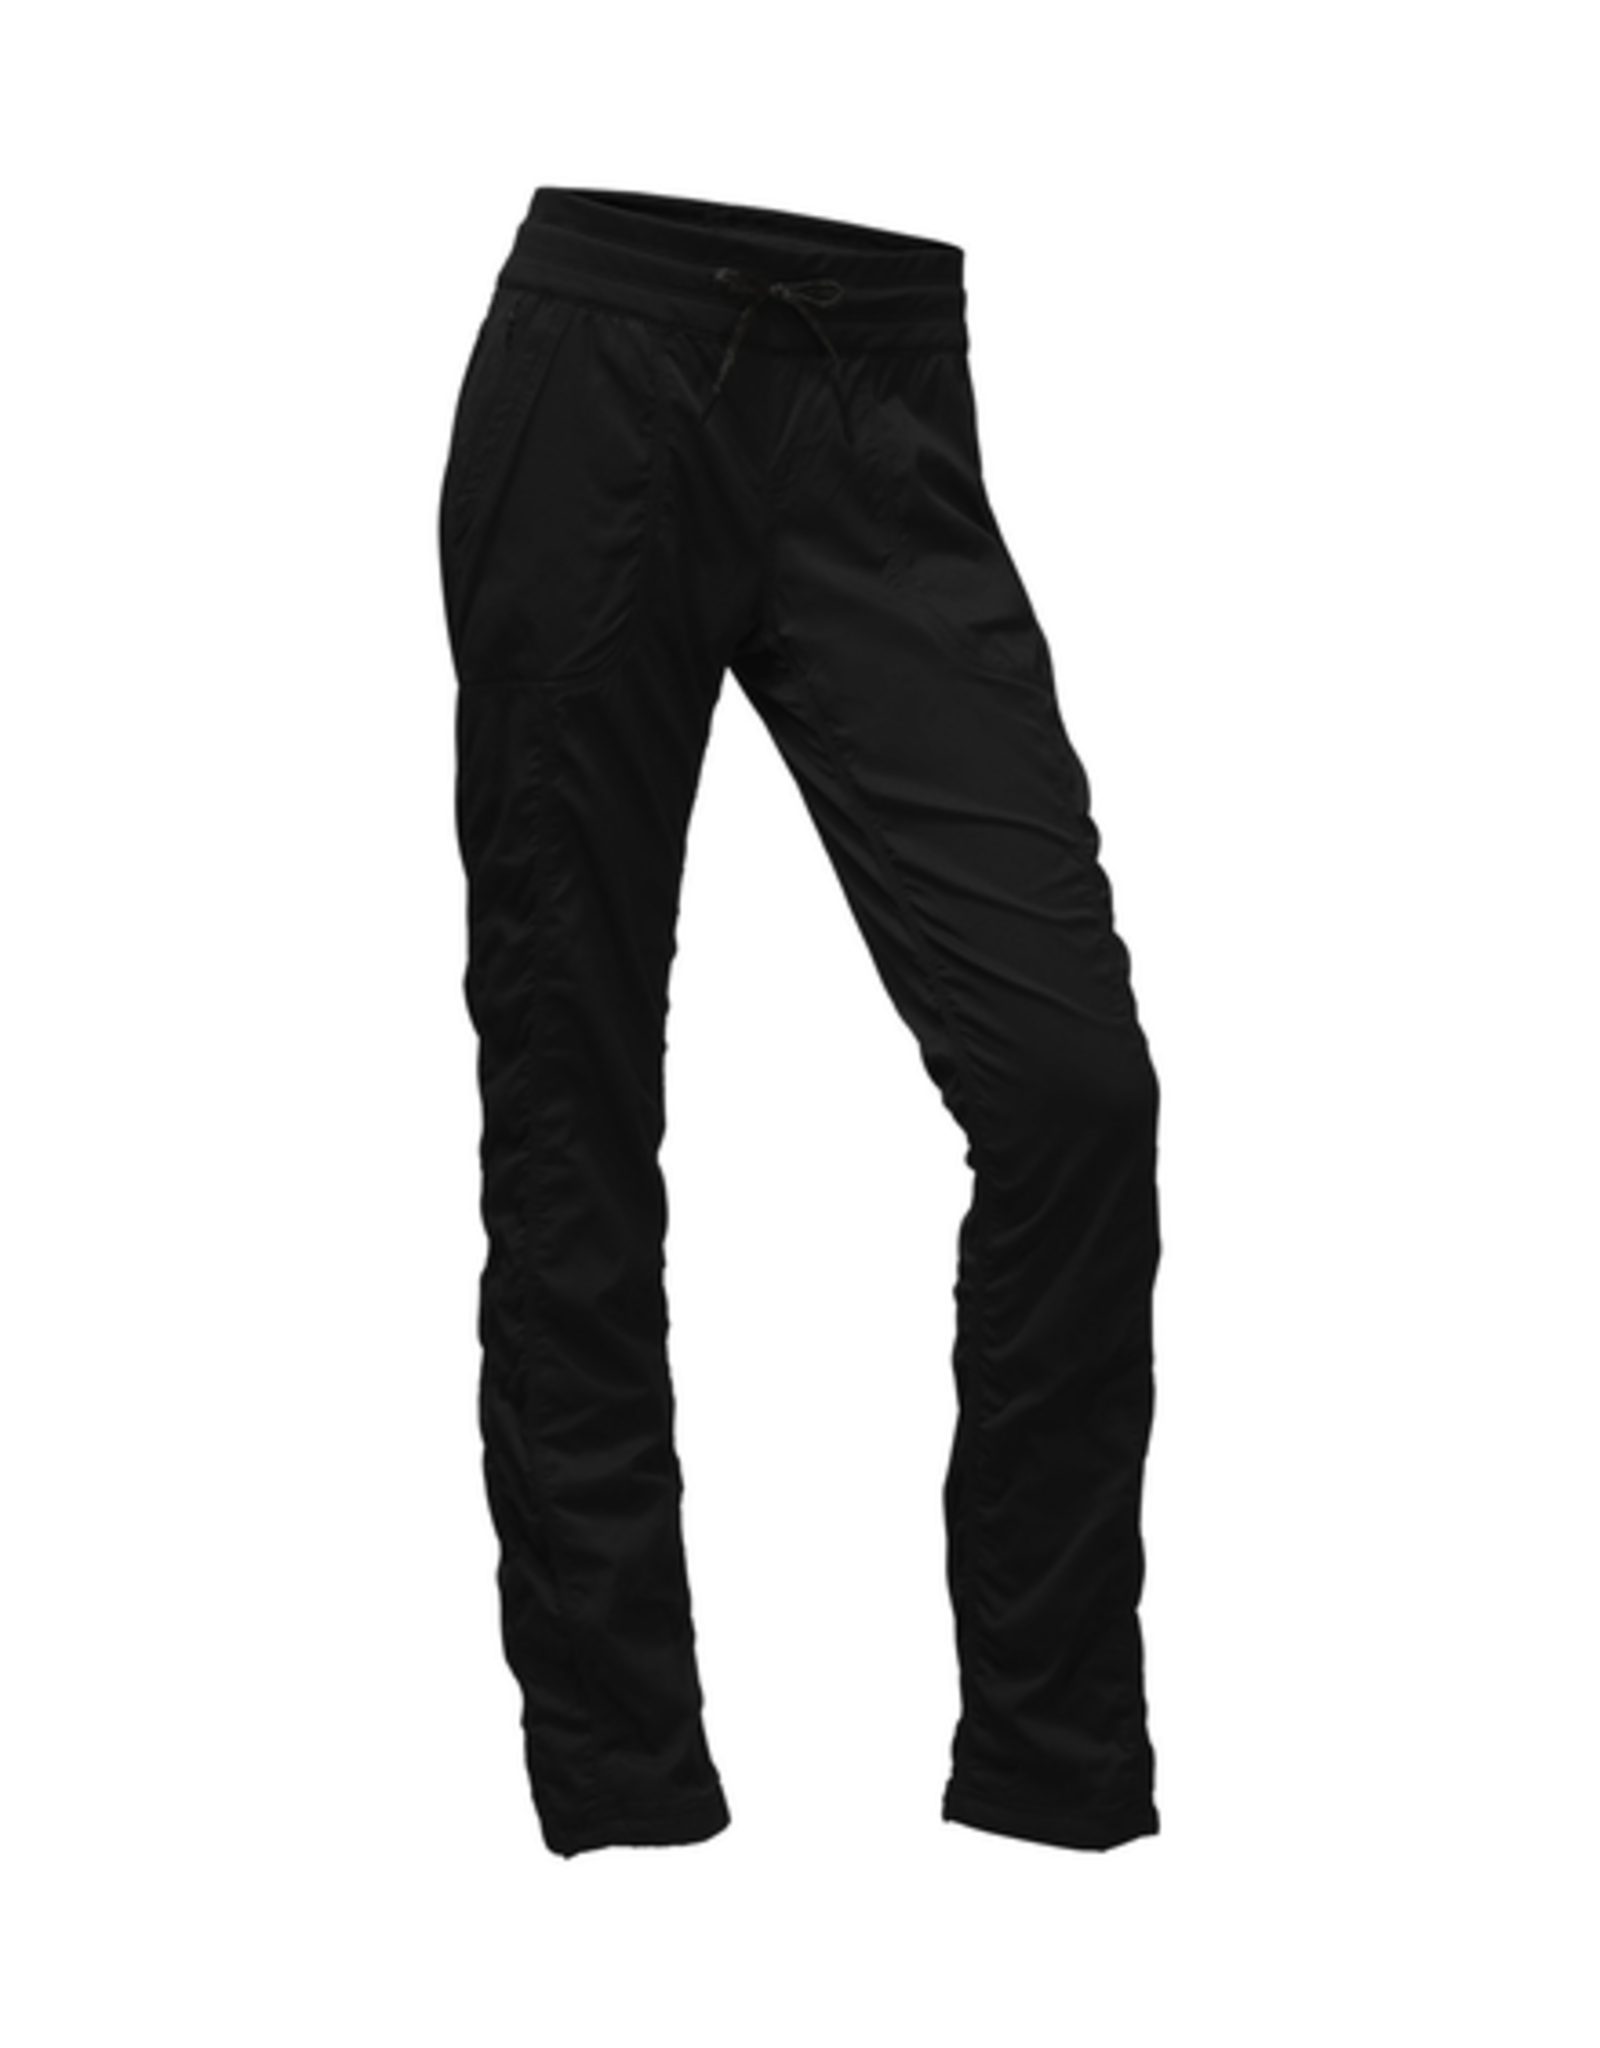 North Face North Face Aphrodite 2.0 Pants